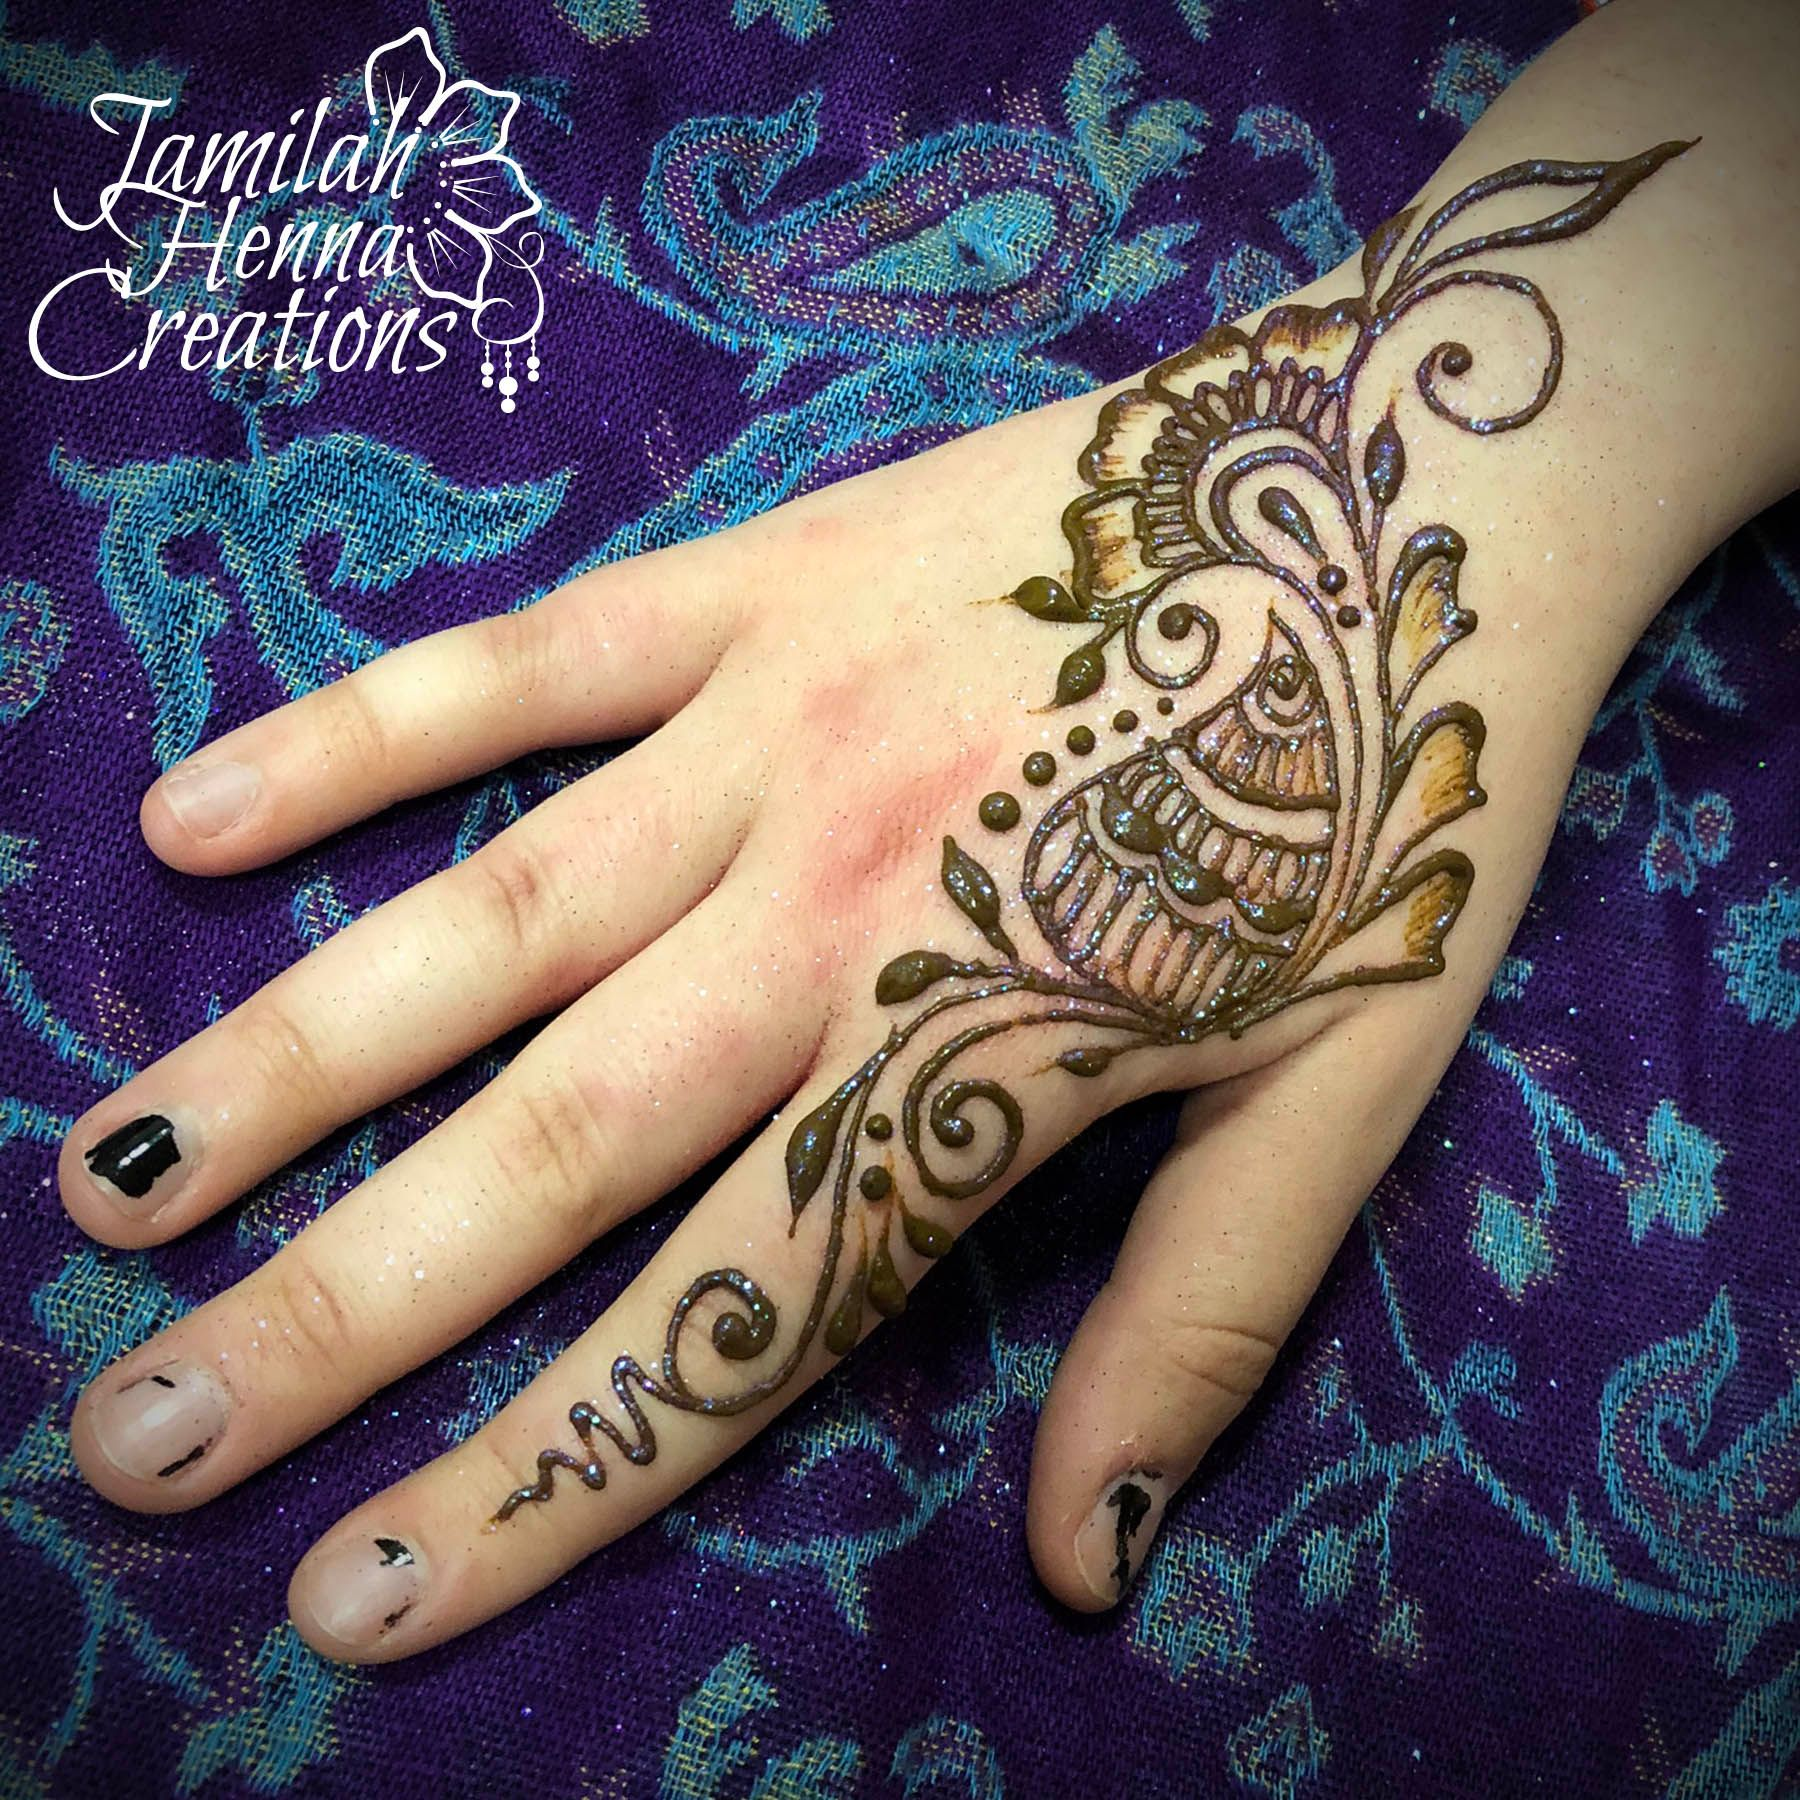 Sweet Simple Henna Www Jamilahhennacreations Com Henna Mehndi